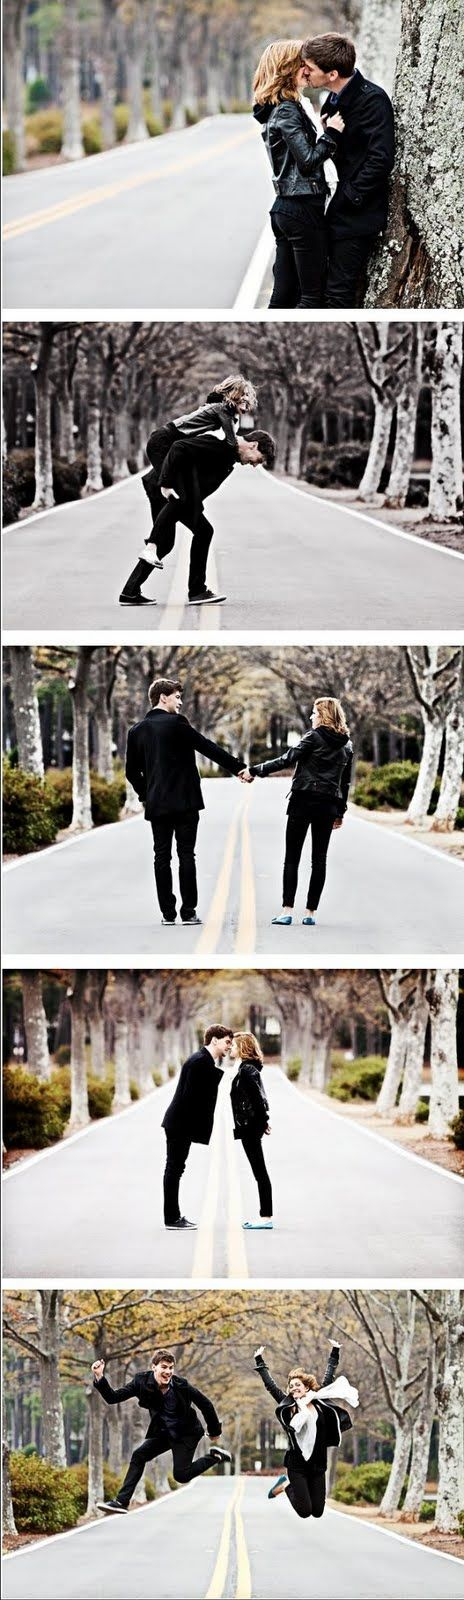 I like the road with trees on both sides...def want shots like this for either engagement or wedding